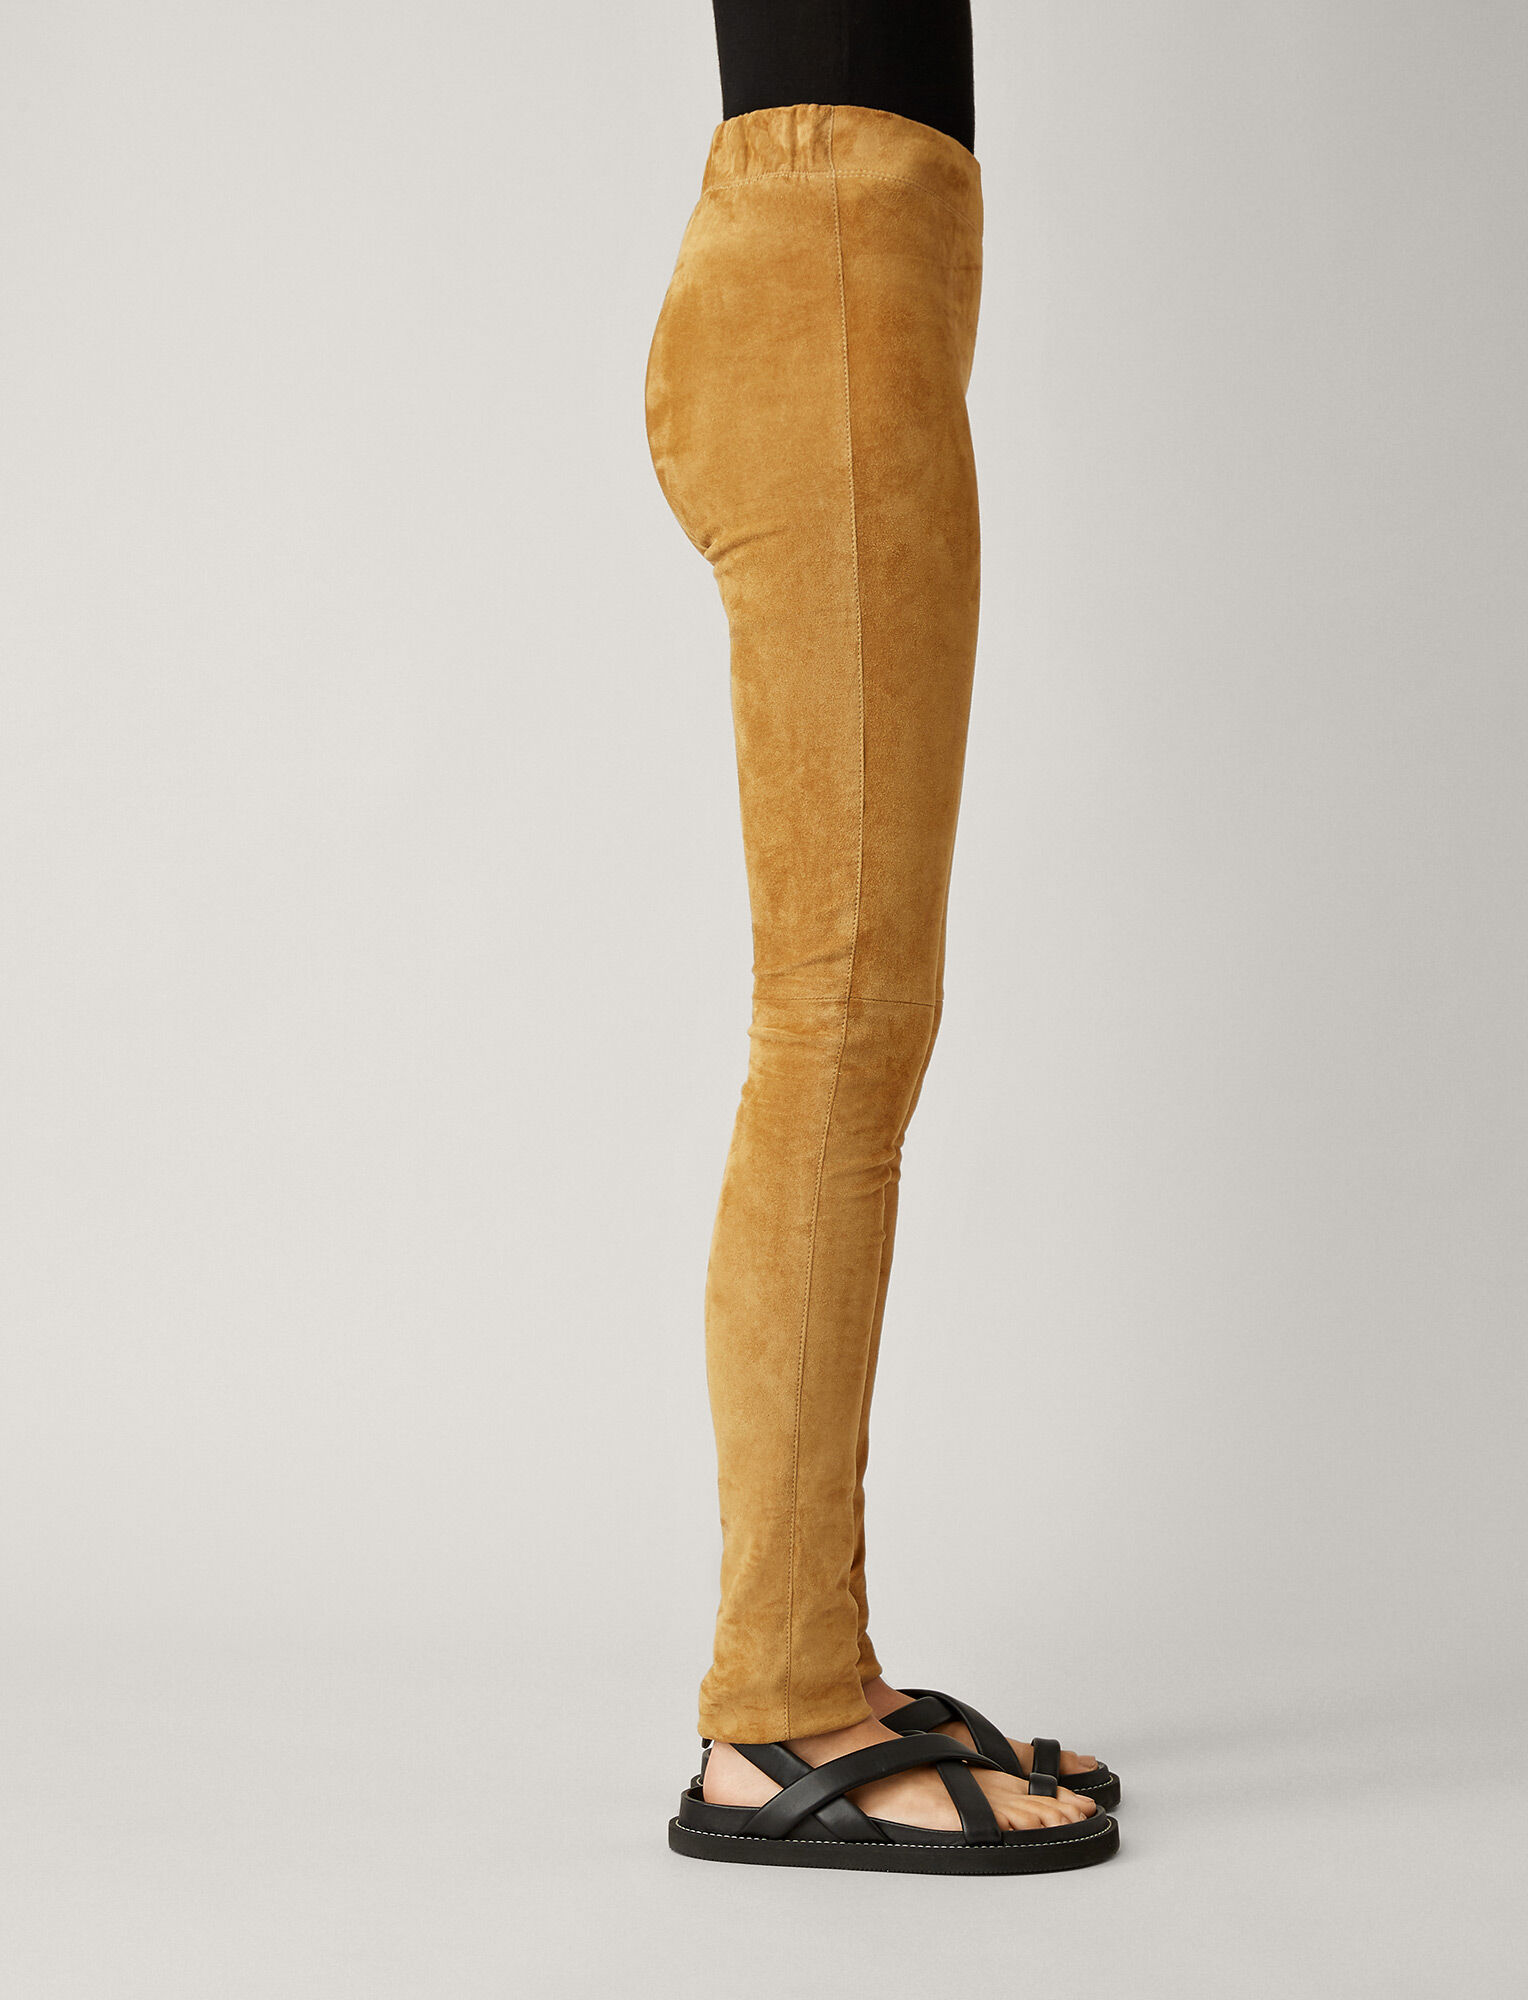 Joseph, Suede Stretch Leggings, in TAN